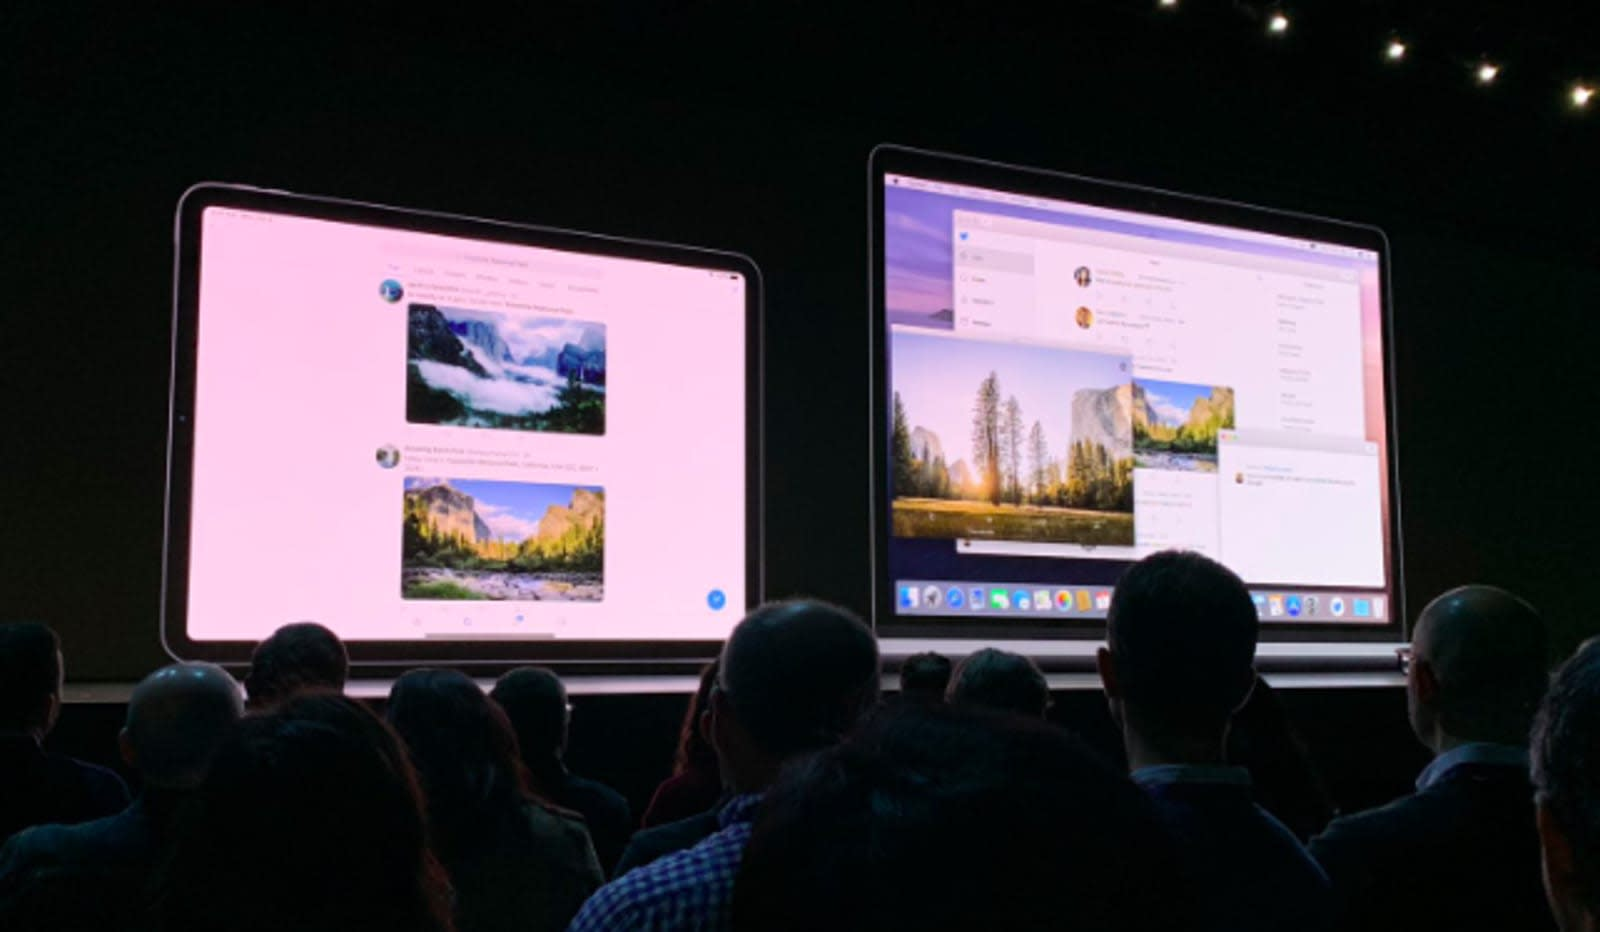 The Twitter app is officially returning to the Mac later this year